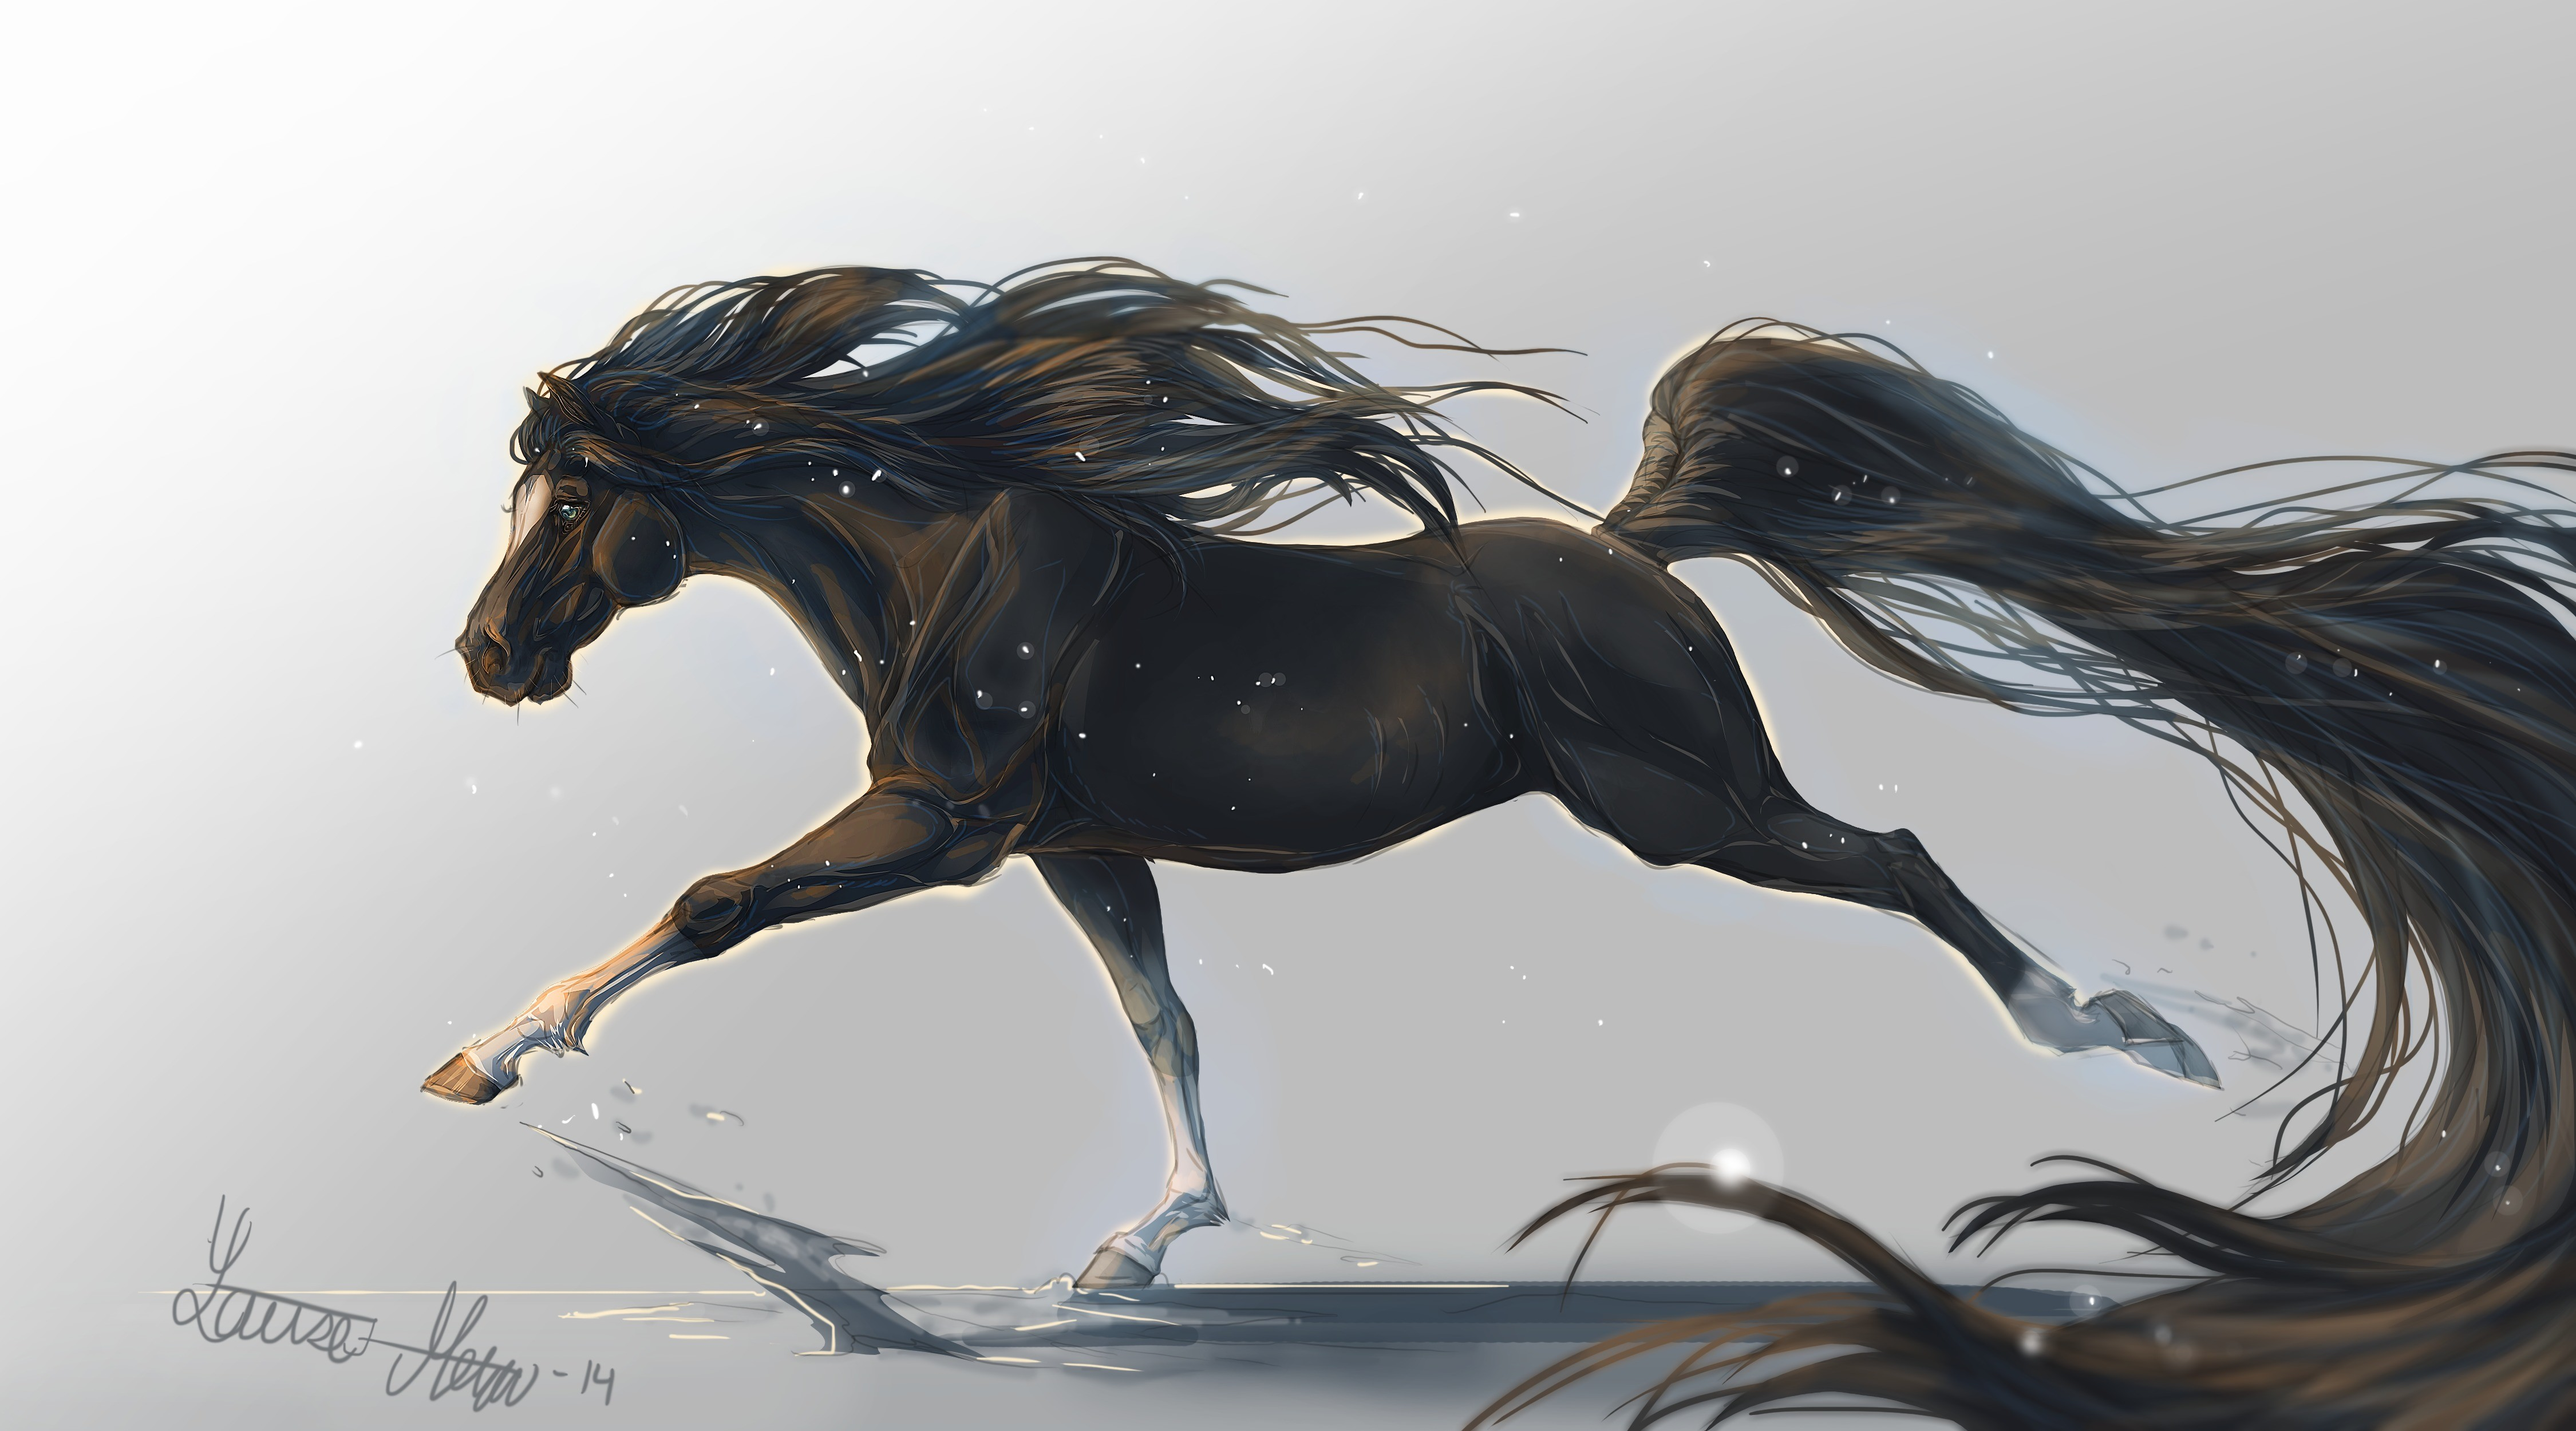 Wallpaper horse, hooves, 5k, 4k wallpaper, mane, galloping ...